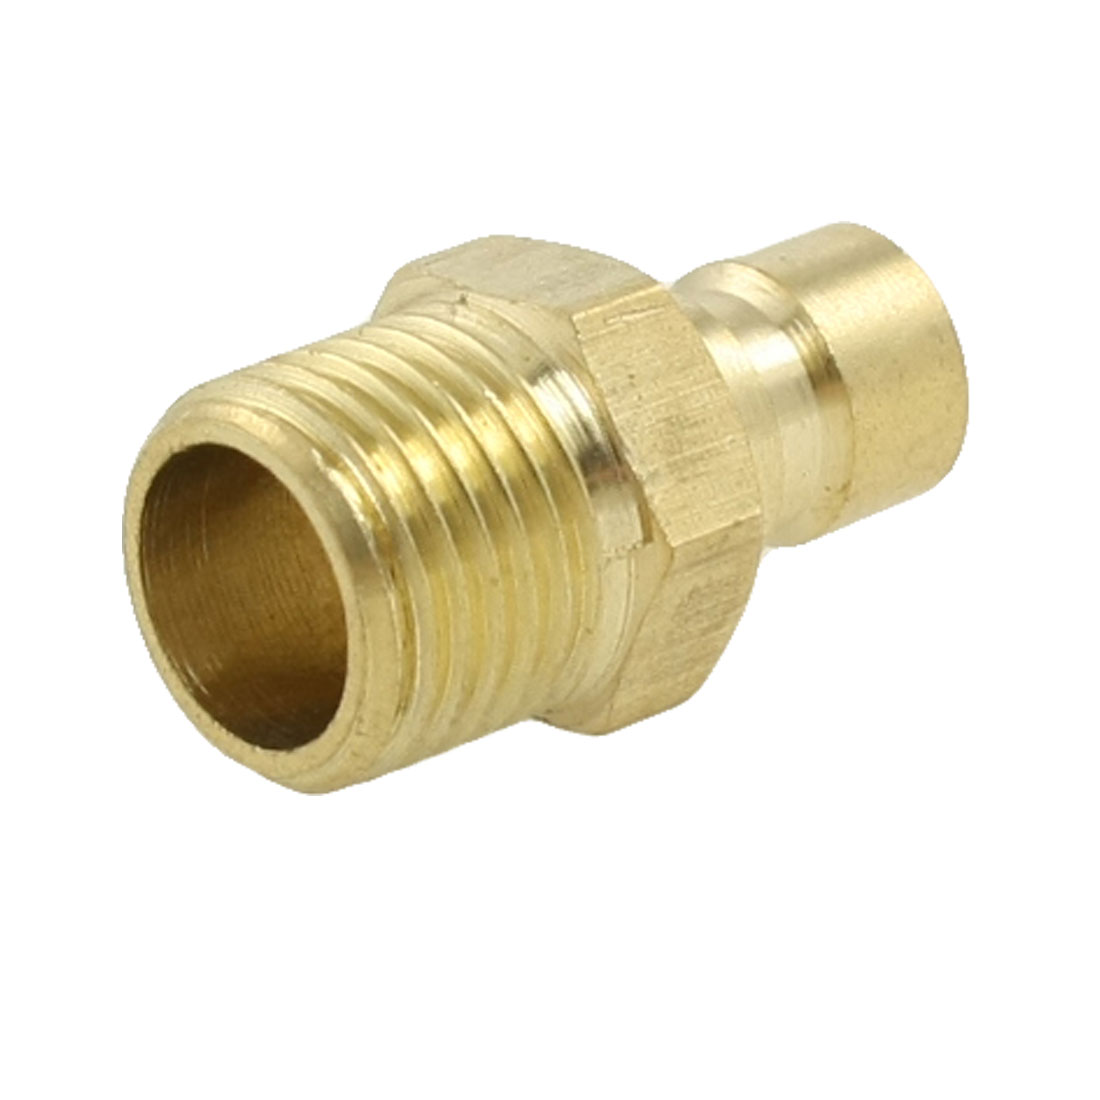 "Brass 13mm 33/64"" Dia Fine Thread Mold Quick Coupler Male Nipple"